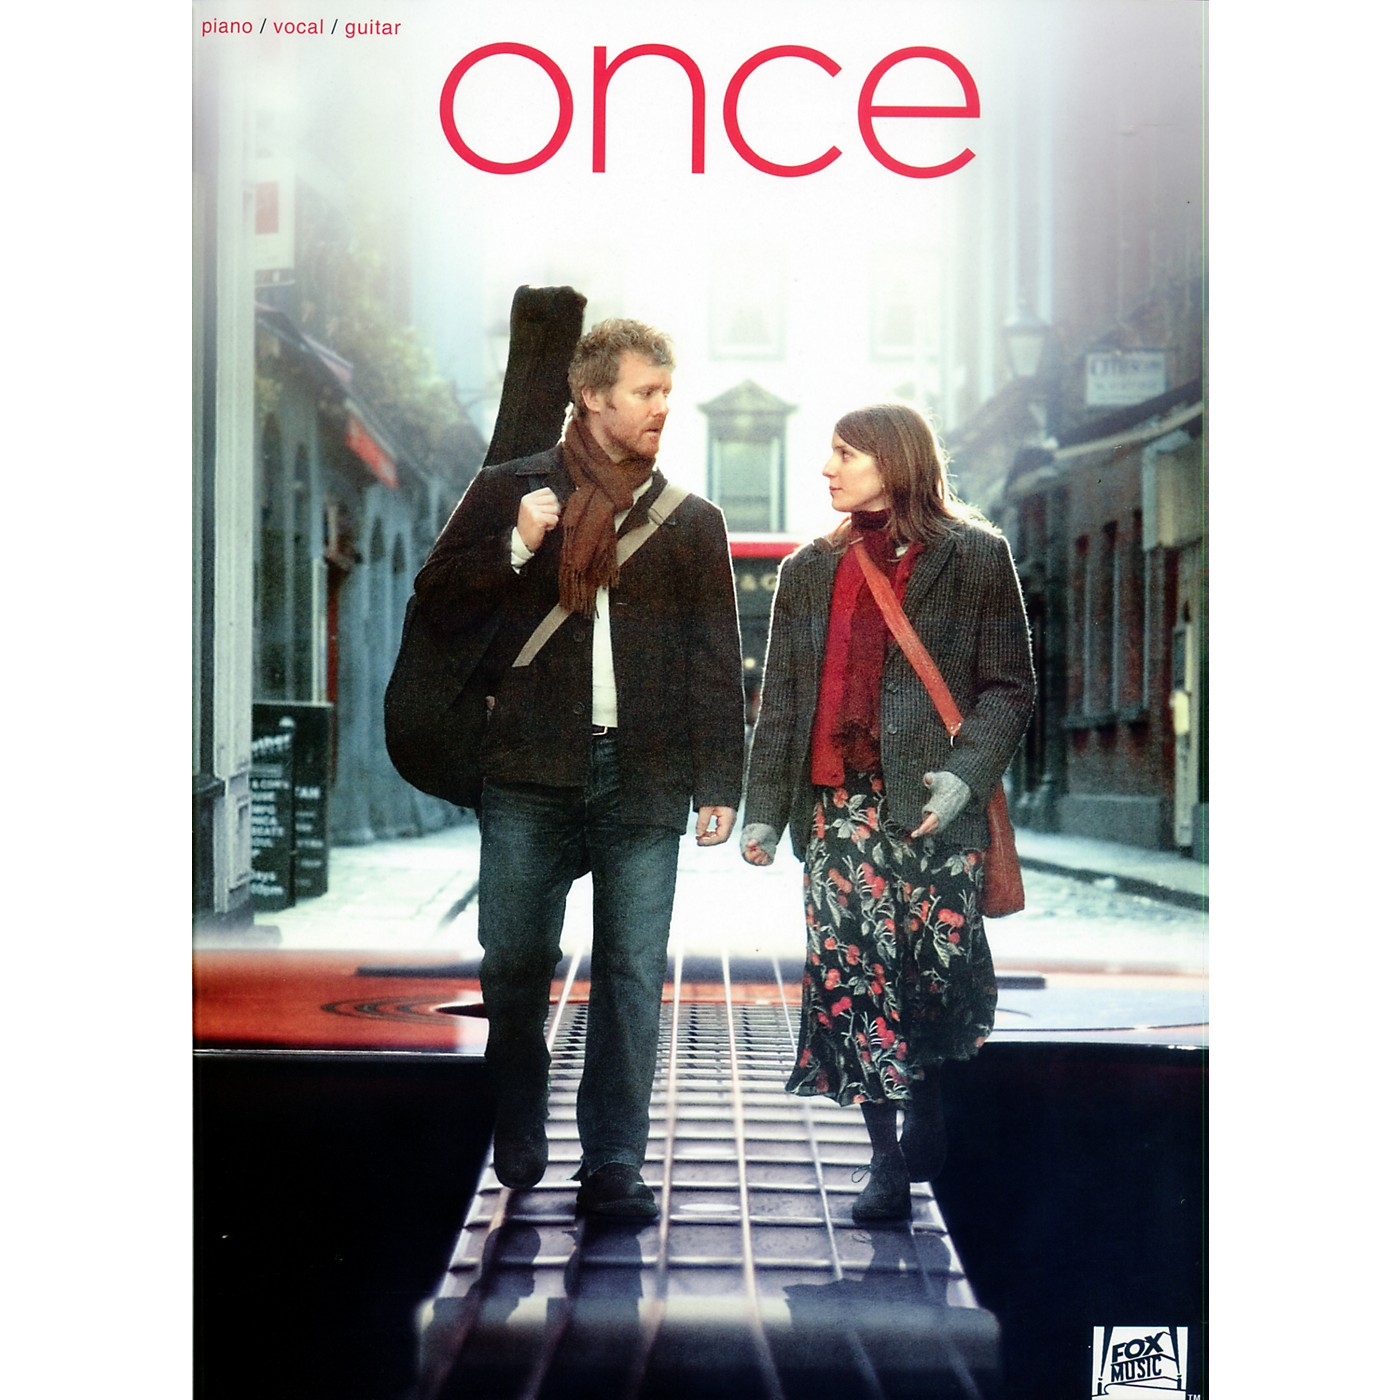 Hal Leonard Once - Music From The Motion Picture for Piano/Vocal/Guitar thumbnail